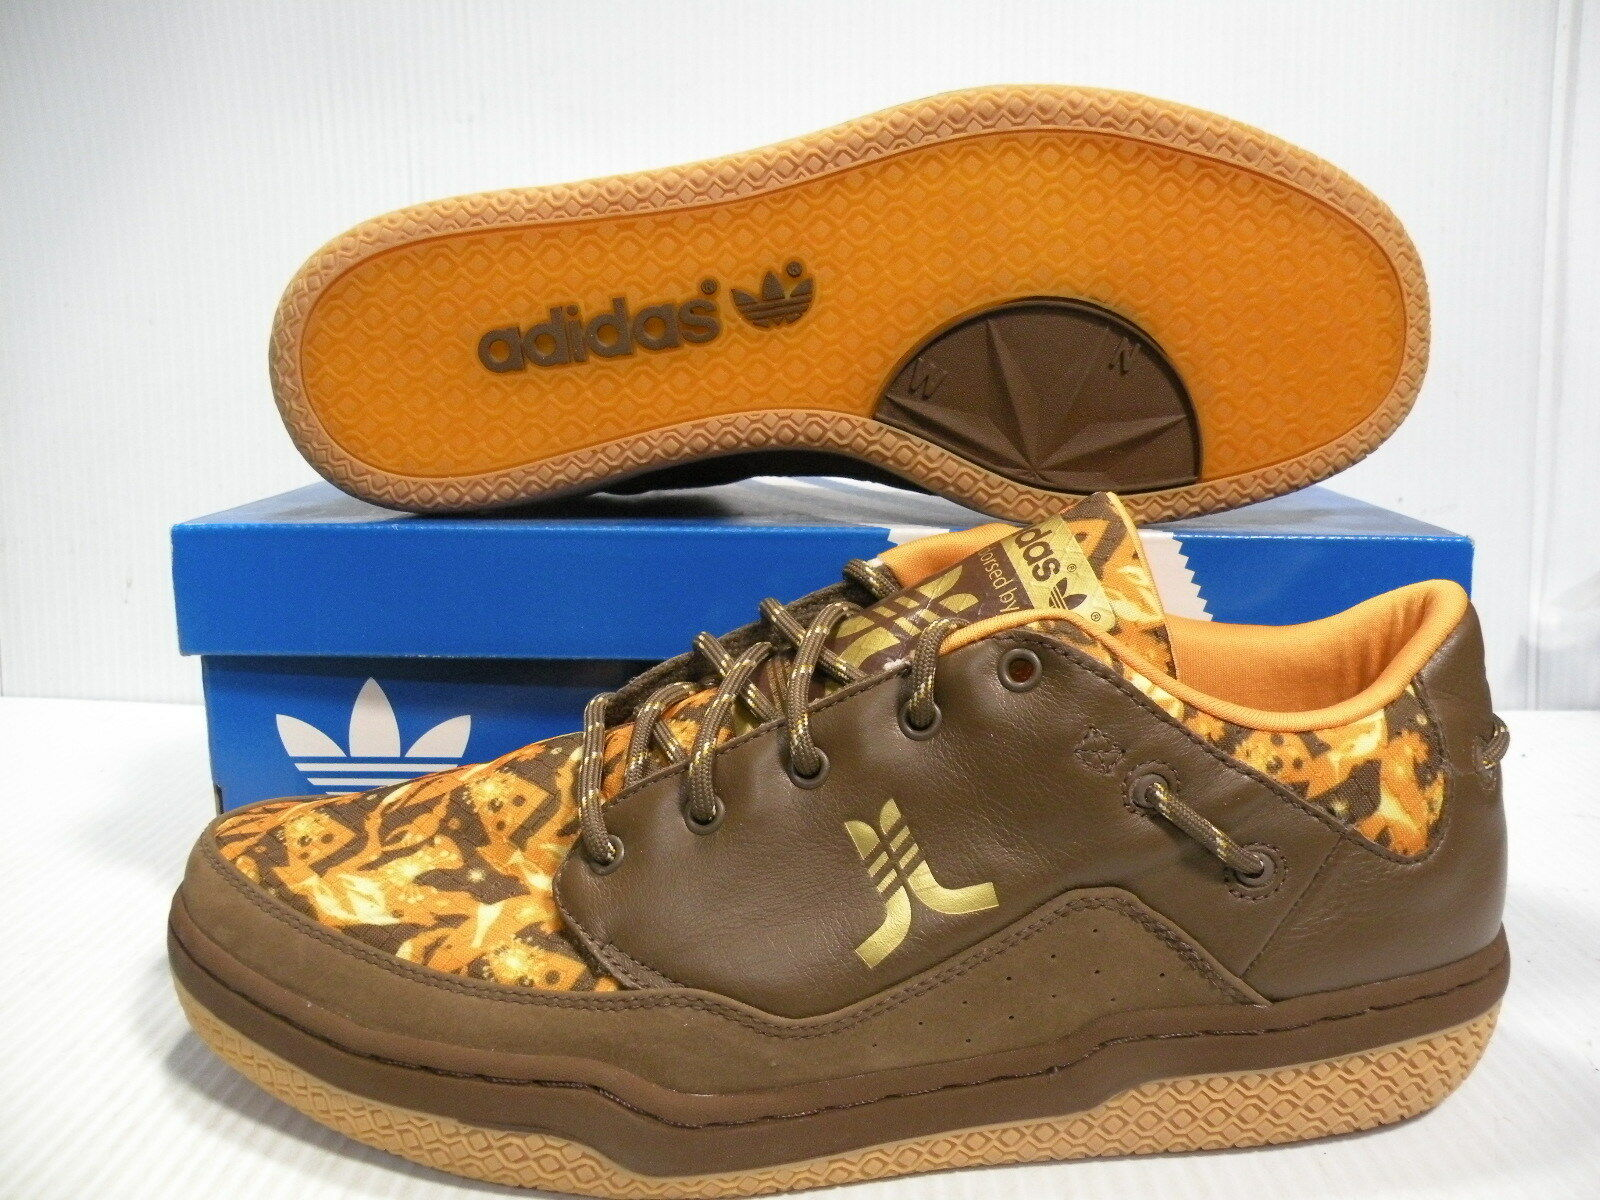 ADIDAS WESC COLLABORATION LOW 791001 SNEAKERS MEN SHOES BROWN 791001 LOW SIZE 12.5 NEW IN 39bed6